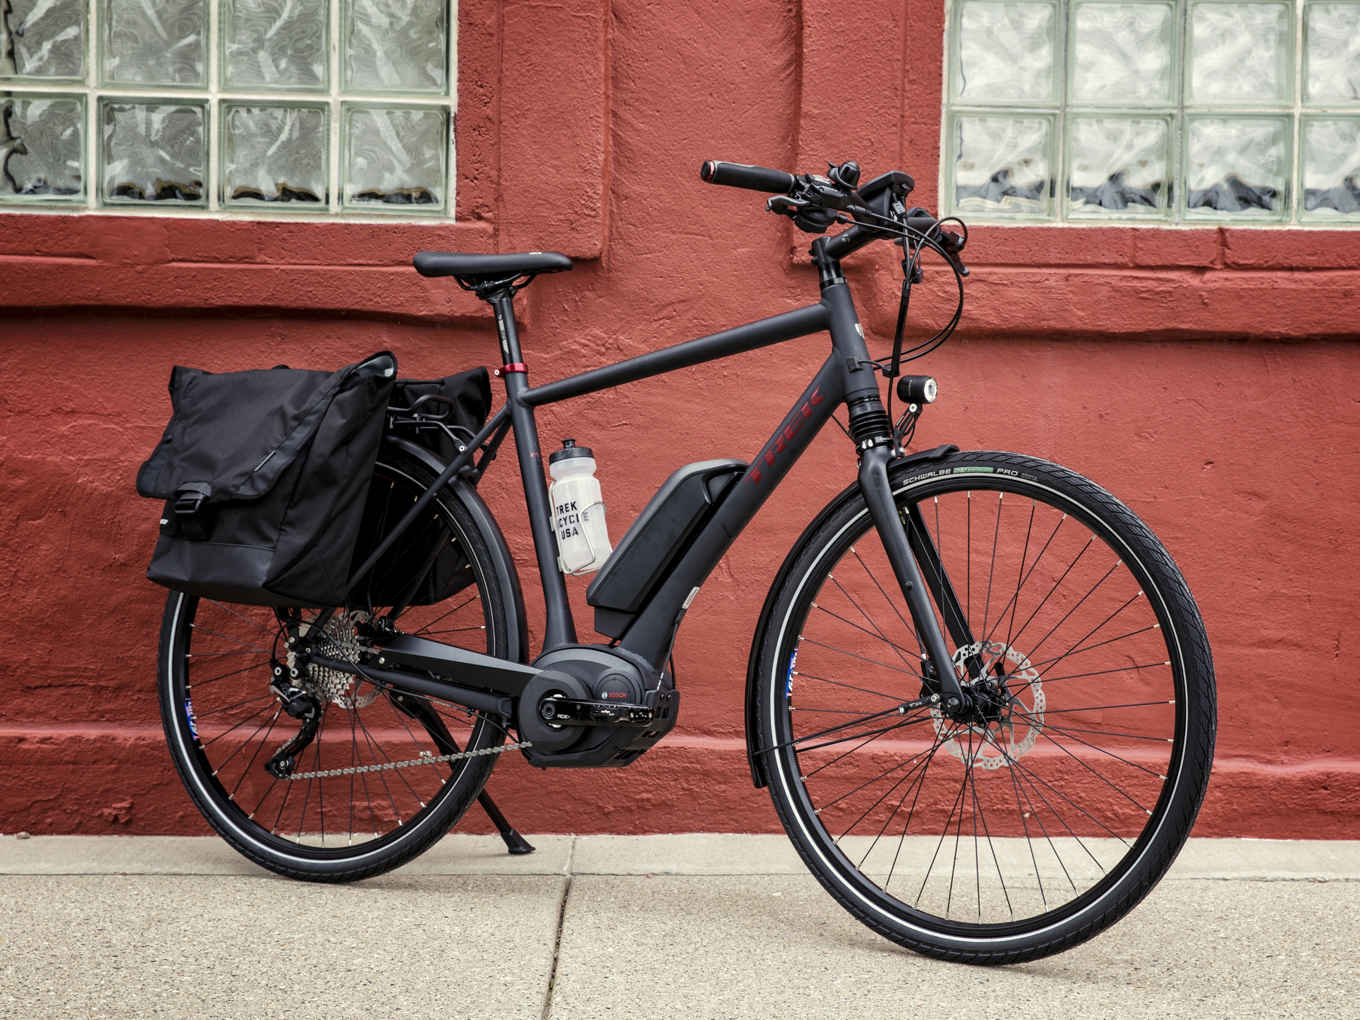 Trek Xm700 Review Prices Specs Videos Photos